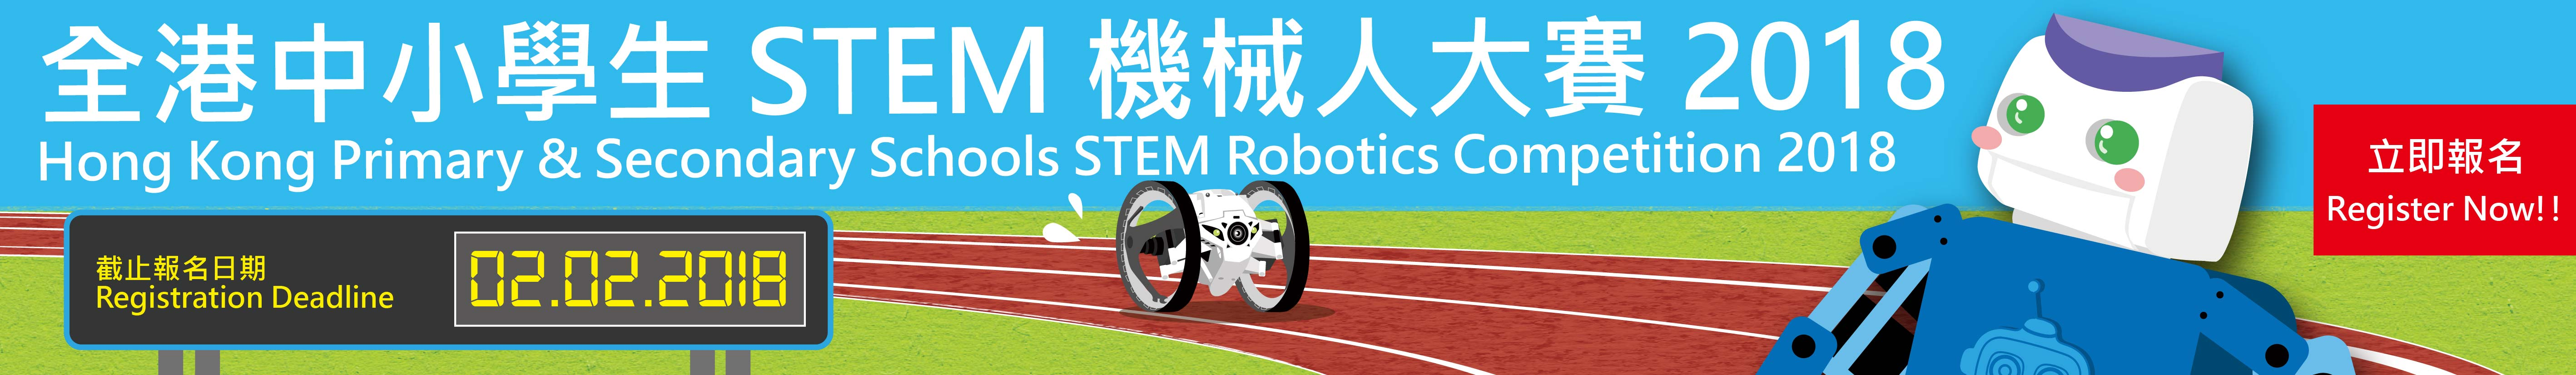 Hong Kong Primary & Secondary Schools STEM Robotics Competition 2018